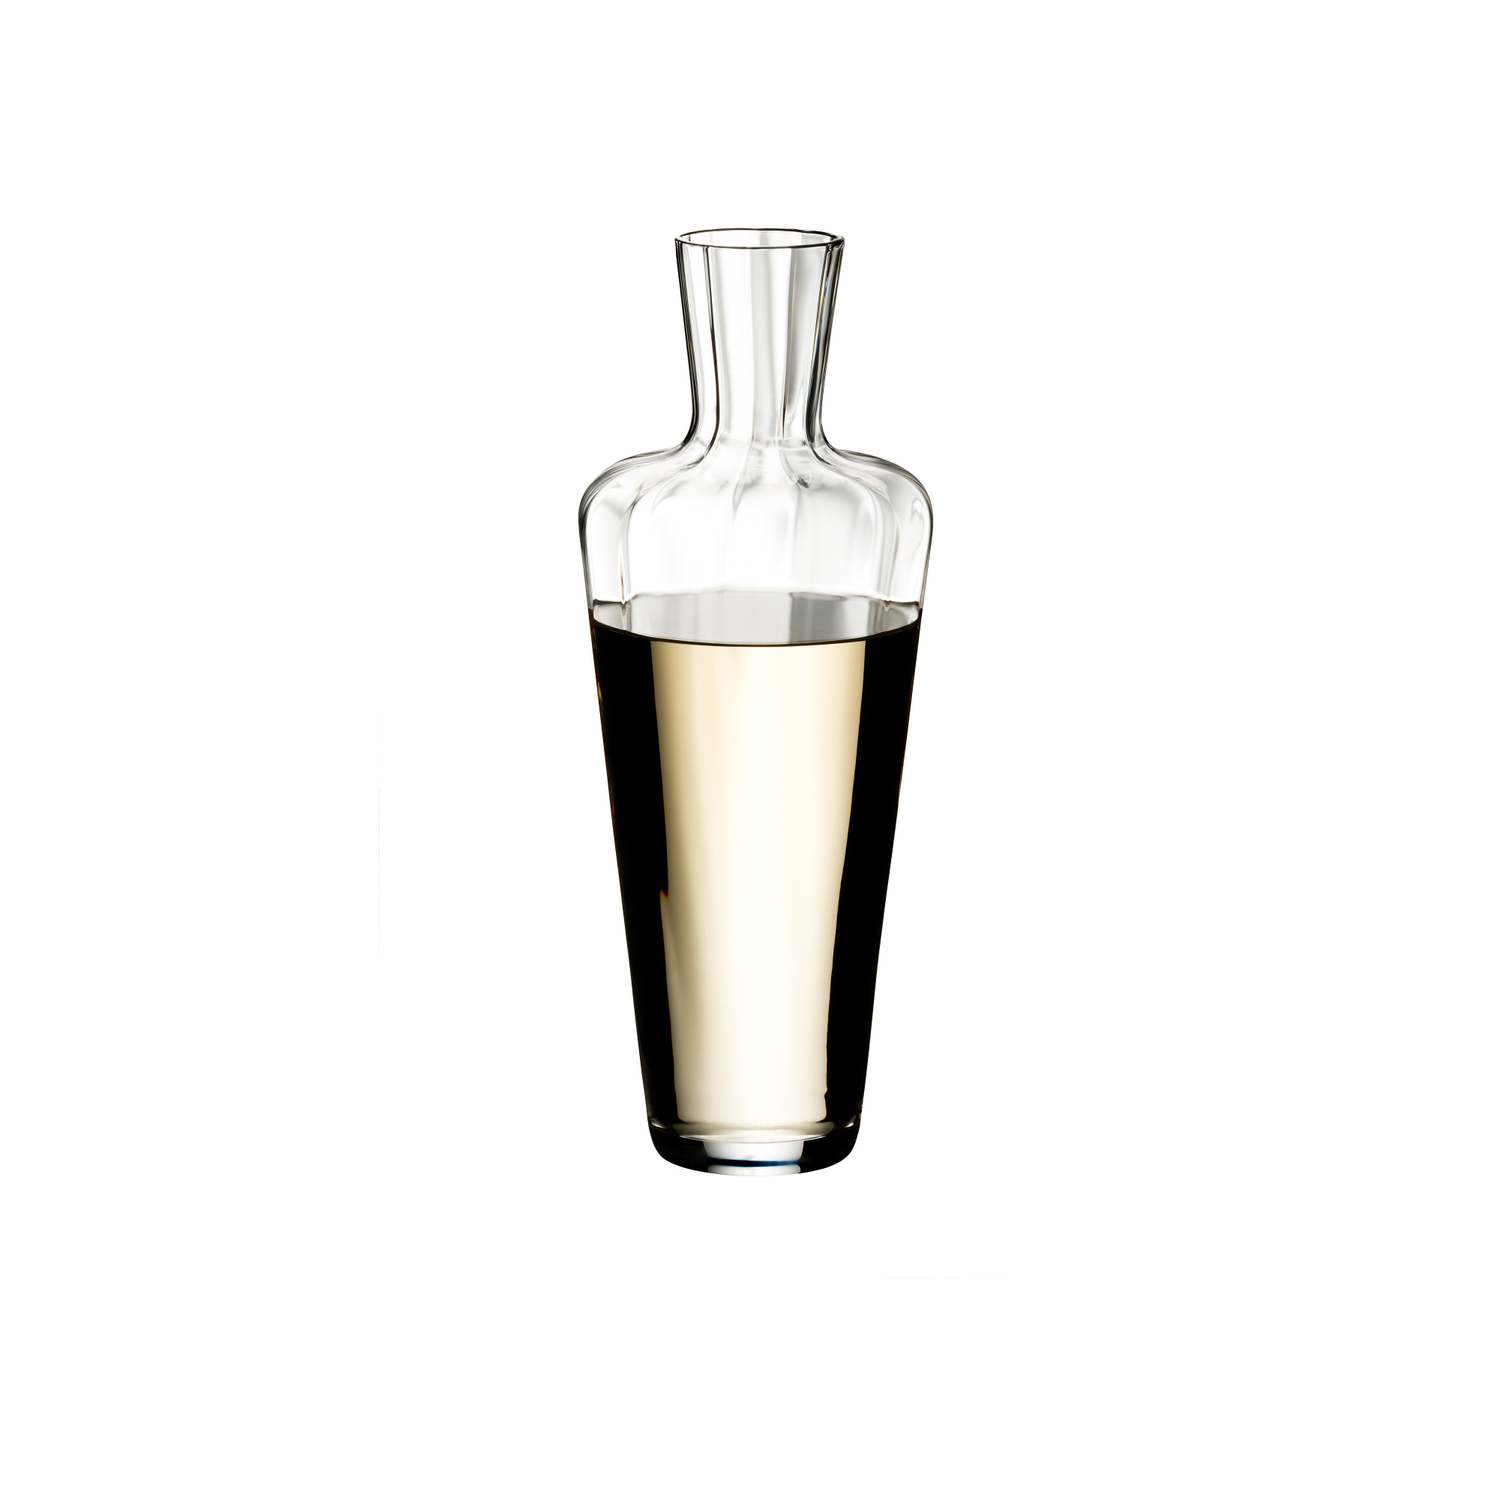 Riedel Crysaline 26.5 Ounce Amadeo Mini Decanter